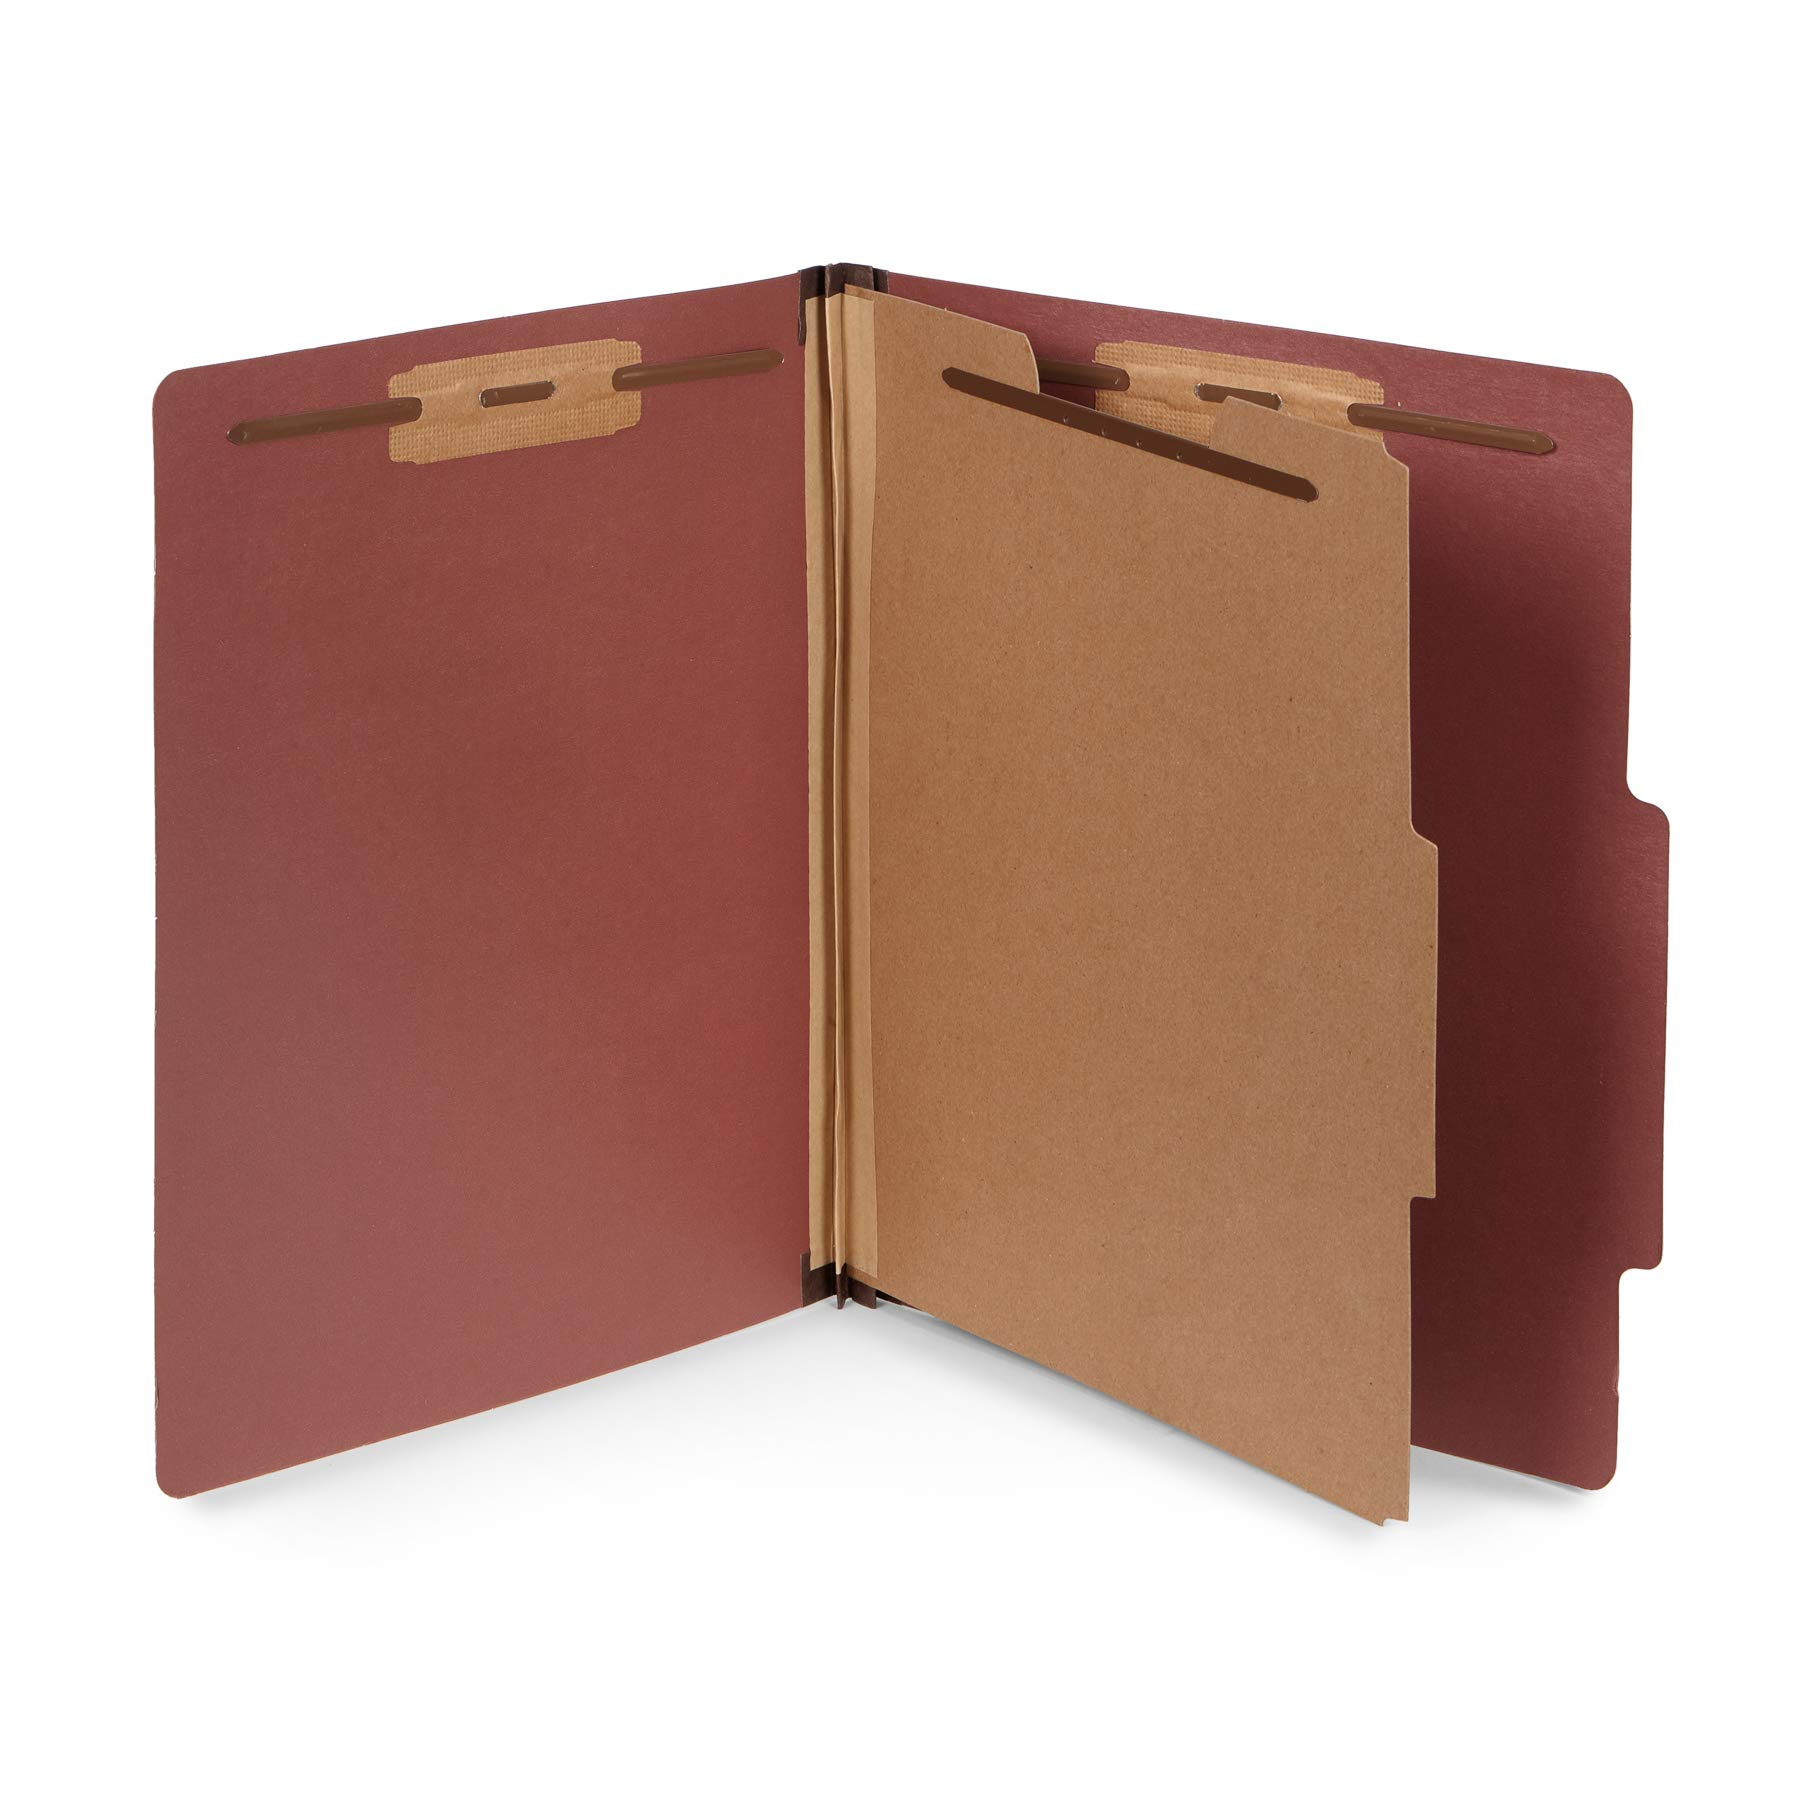 10 Letter Size Red Classification Folders - 1 Divider - 2 Inch Tyvek Expansions - Durable 2 Prongs Designed to Organize Standard Medical Files, Office Reports - Letter Size, Red Brick Color, 10 Pack by Blue Summit Supplies